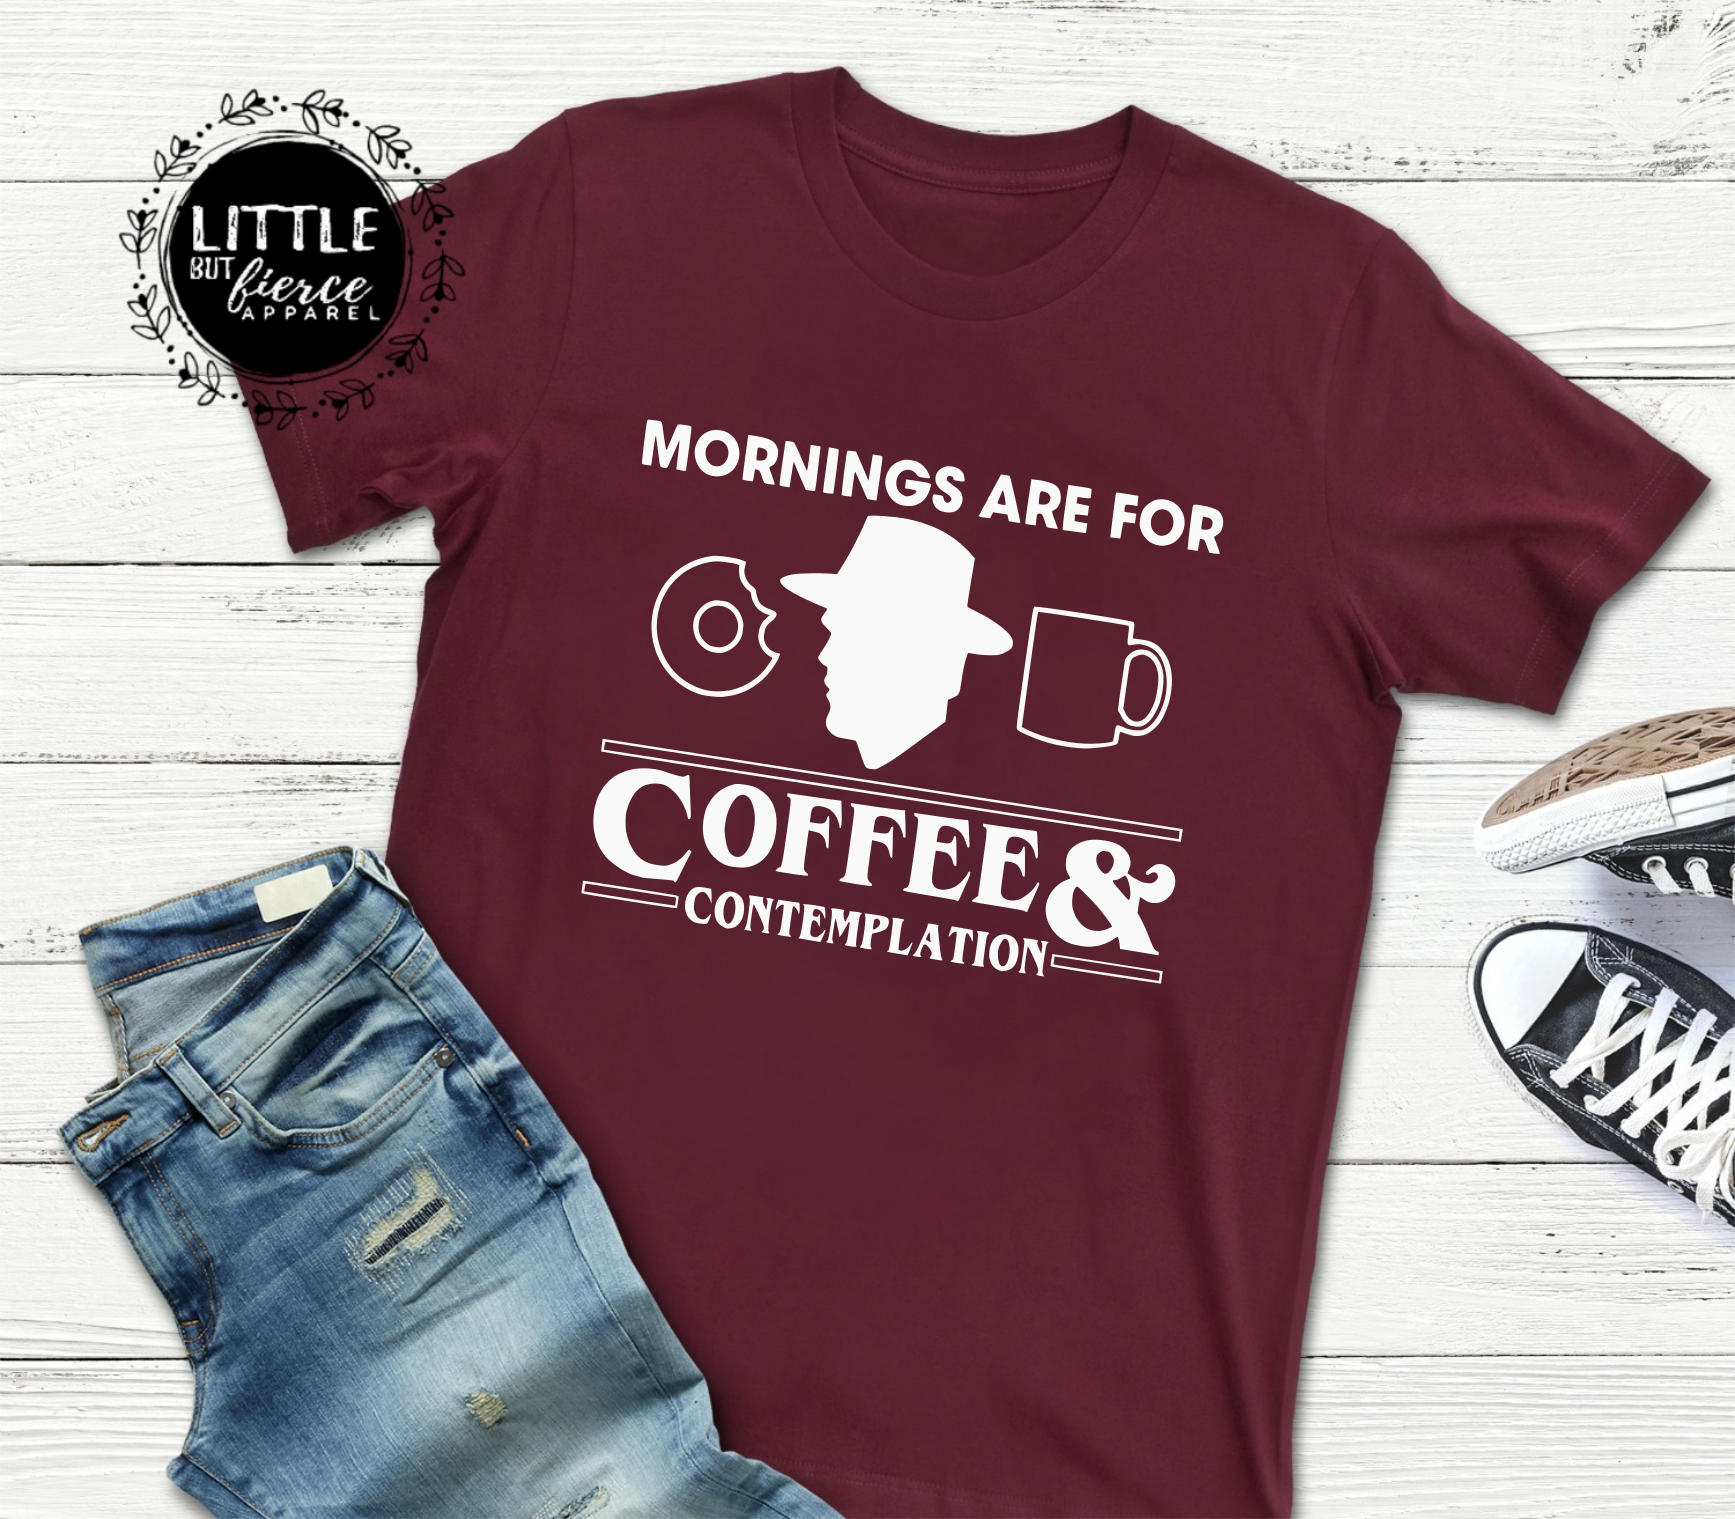 Stranger Things Shirt Hopper Shirt Coffee